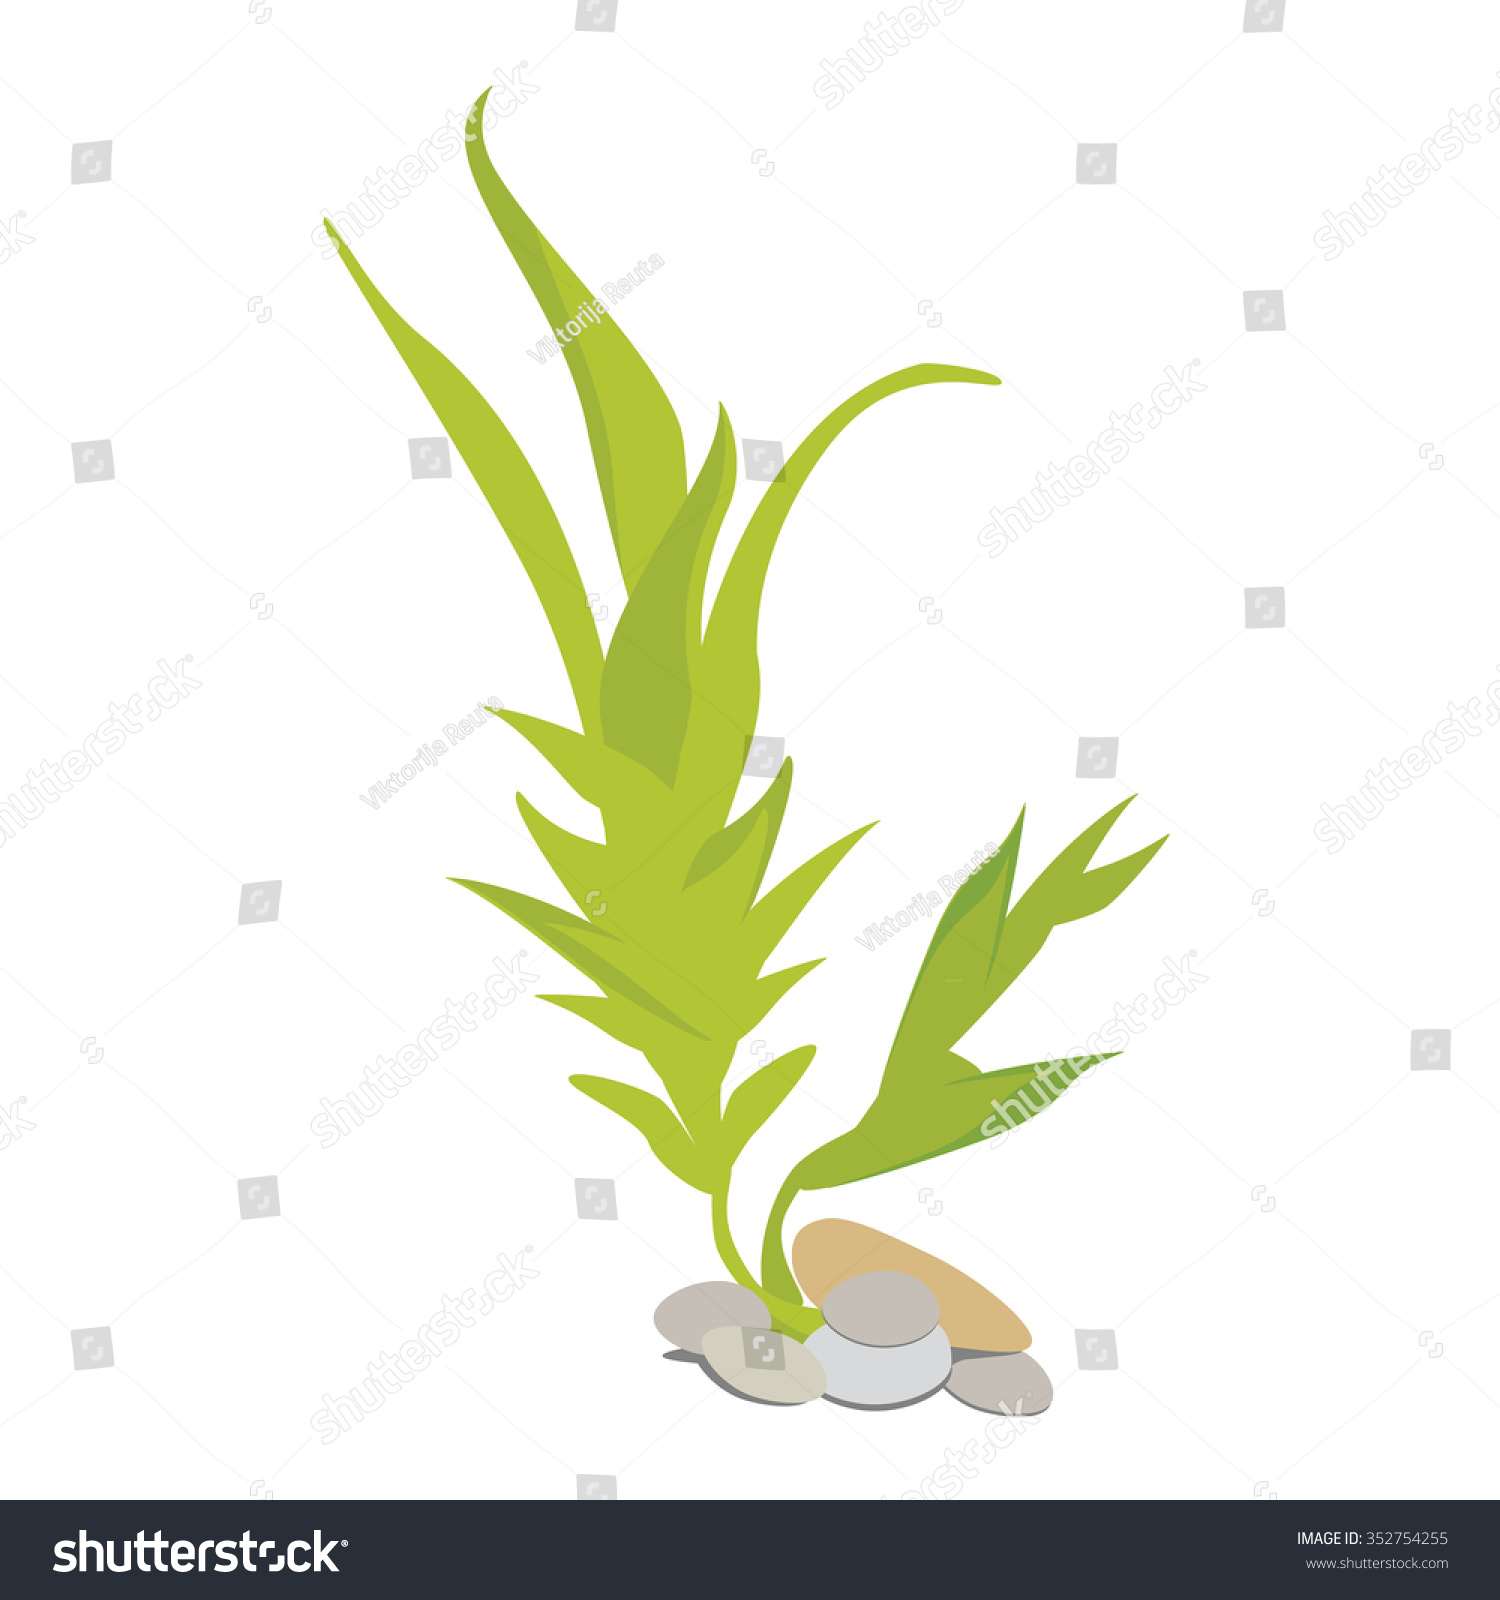 algae illustration vector illustration green algae with stones for aquarium 2503